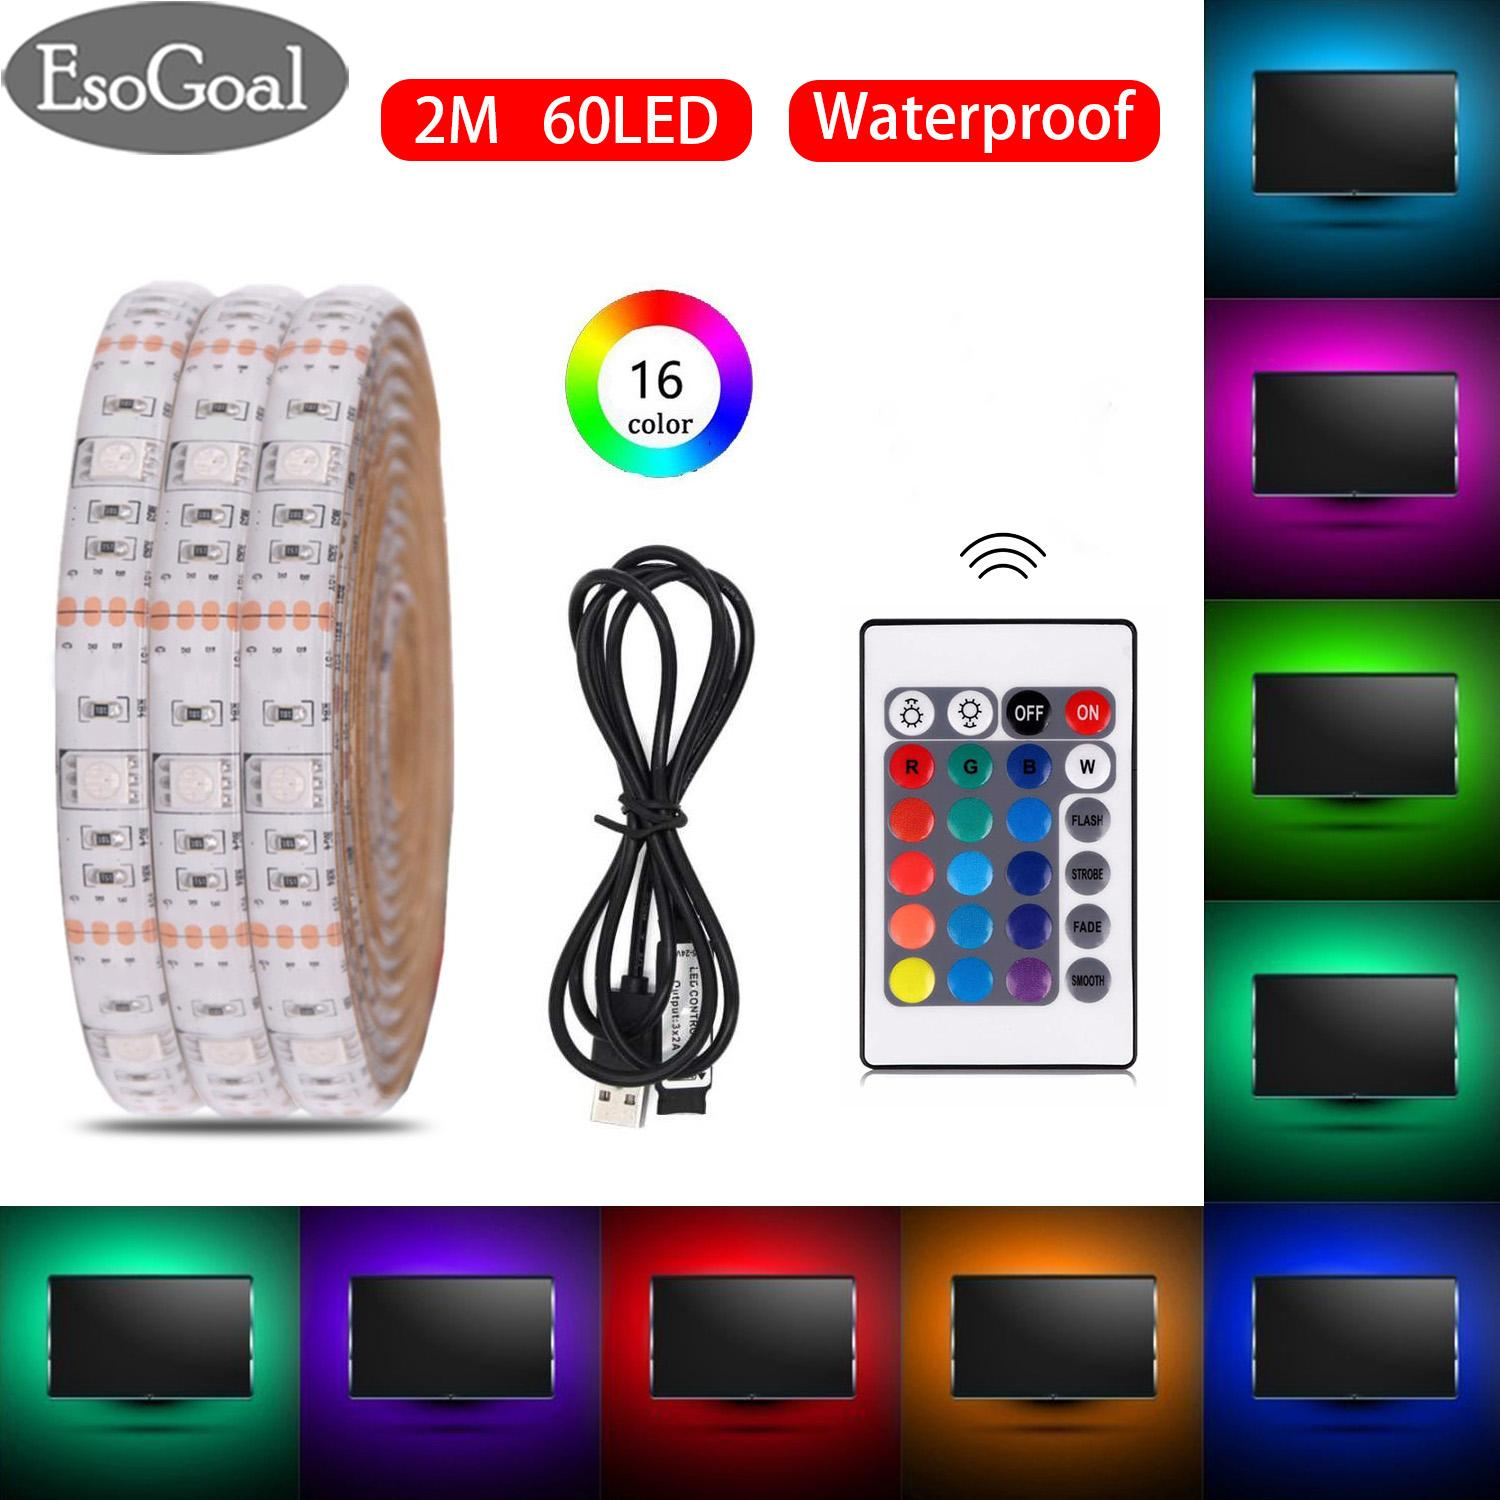 Esogoal Usb Led Strip Light Rgb Waterproof Portable 5050 2m Led Tv Backlight Ip65 60leds Usb Powered Strip With 24keys Remote Controller By Esogoal.